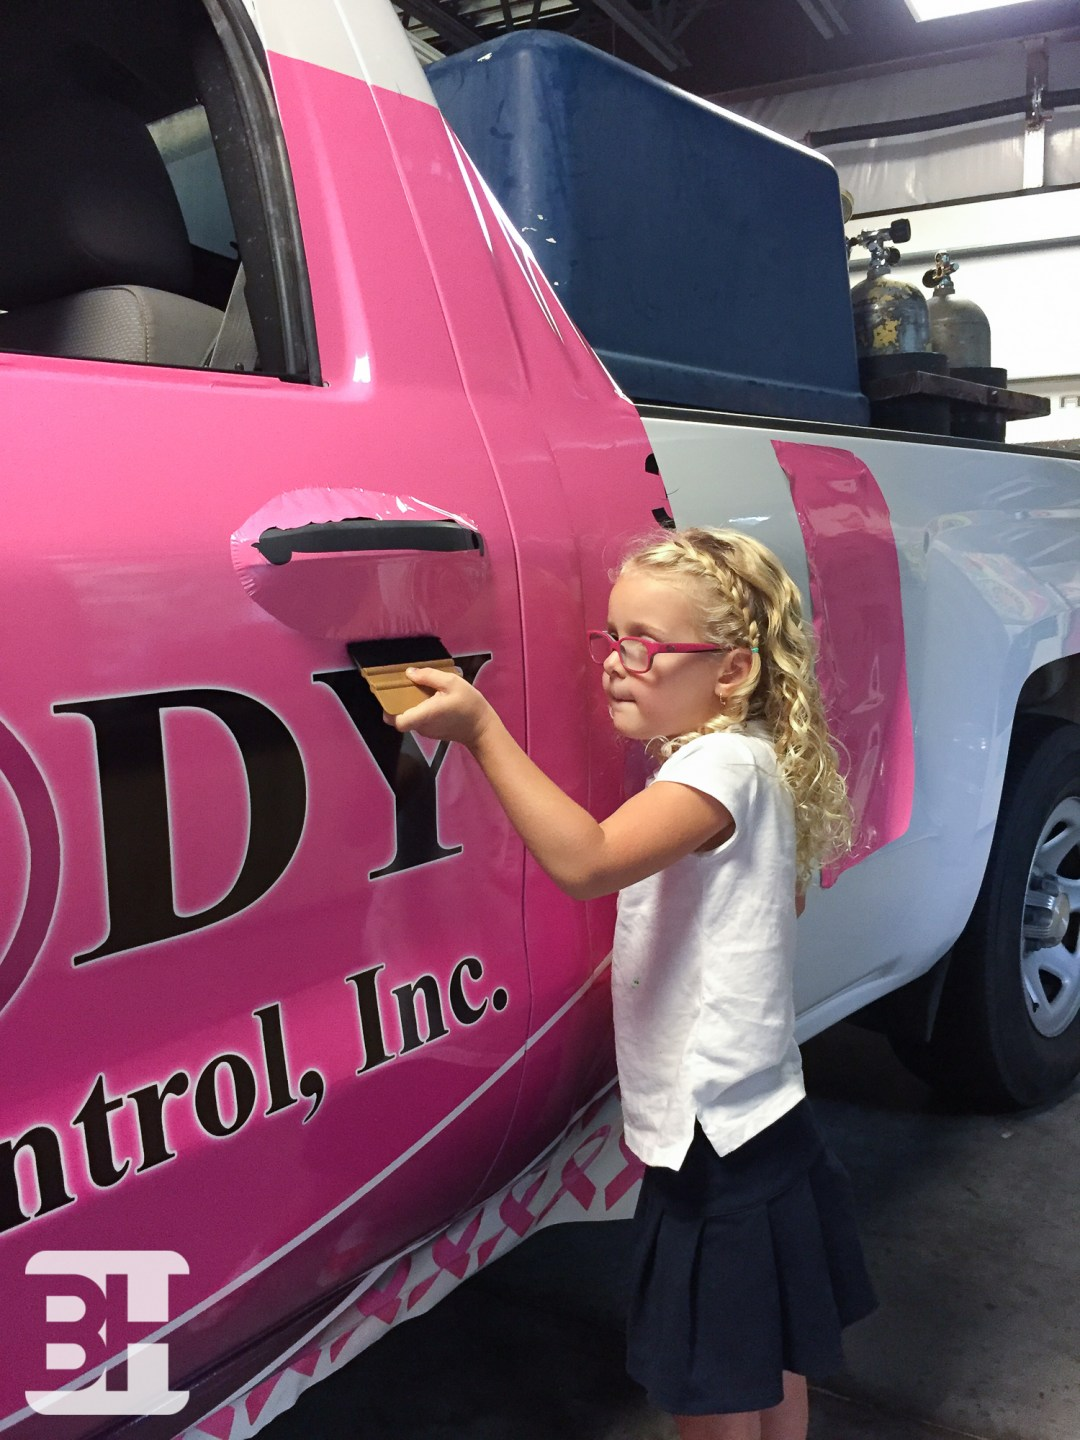 Vehicle wraps in Daytona beach for an affordable price